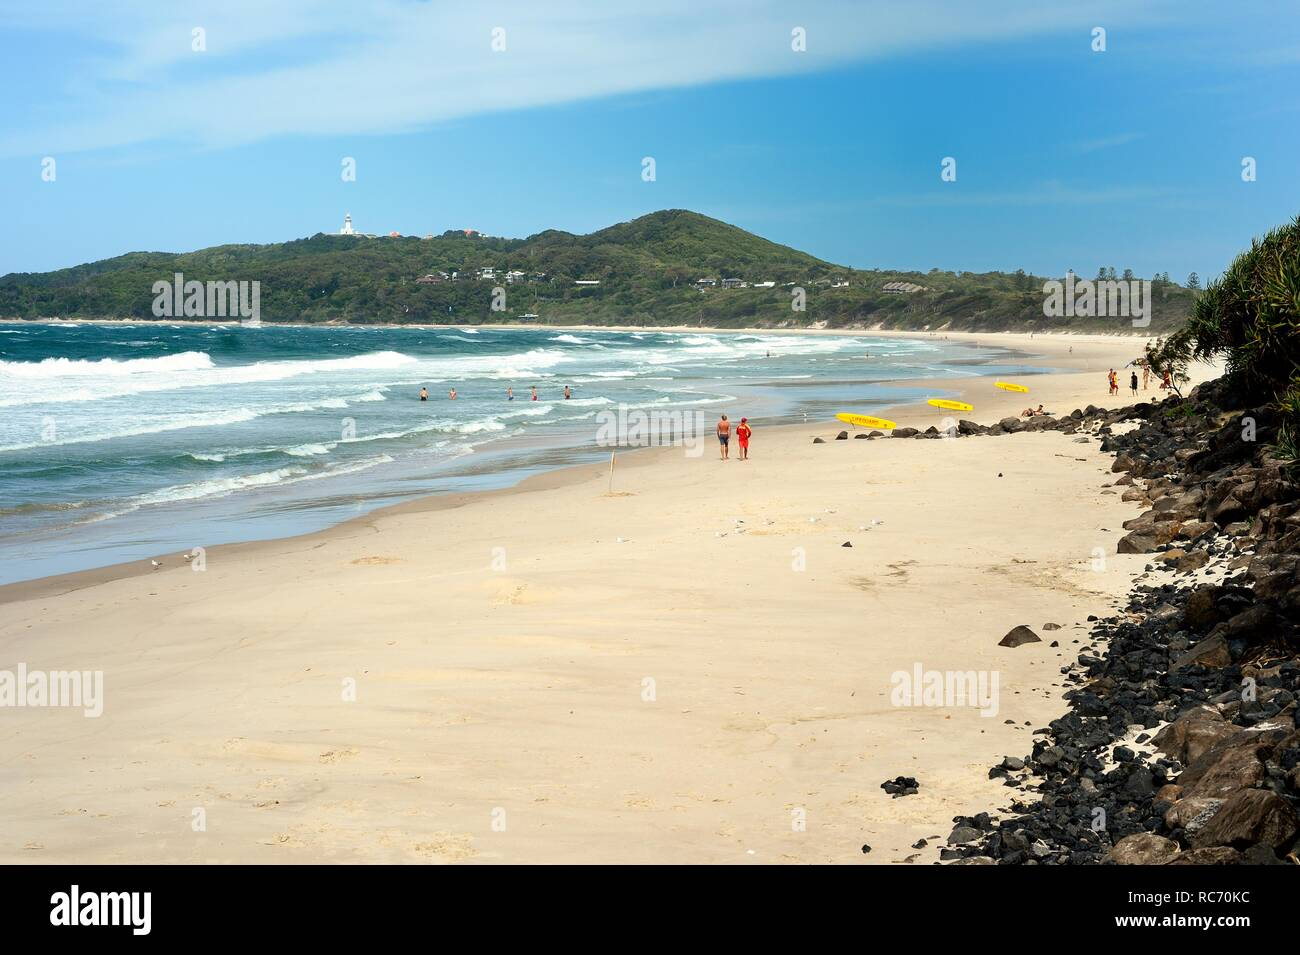 Swimmers in the sea Byron Bay, Australia - Stock Image